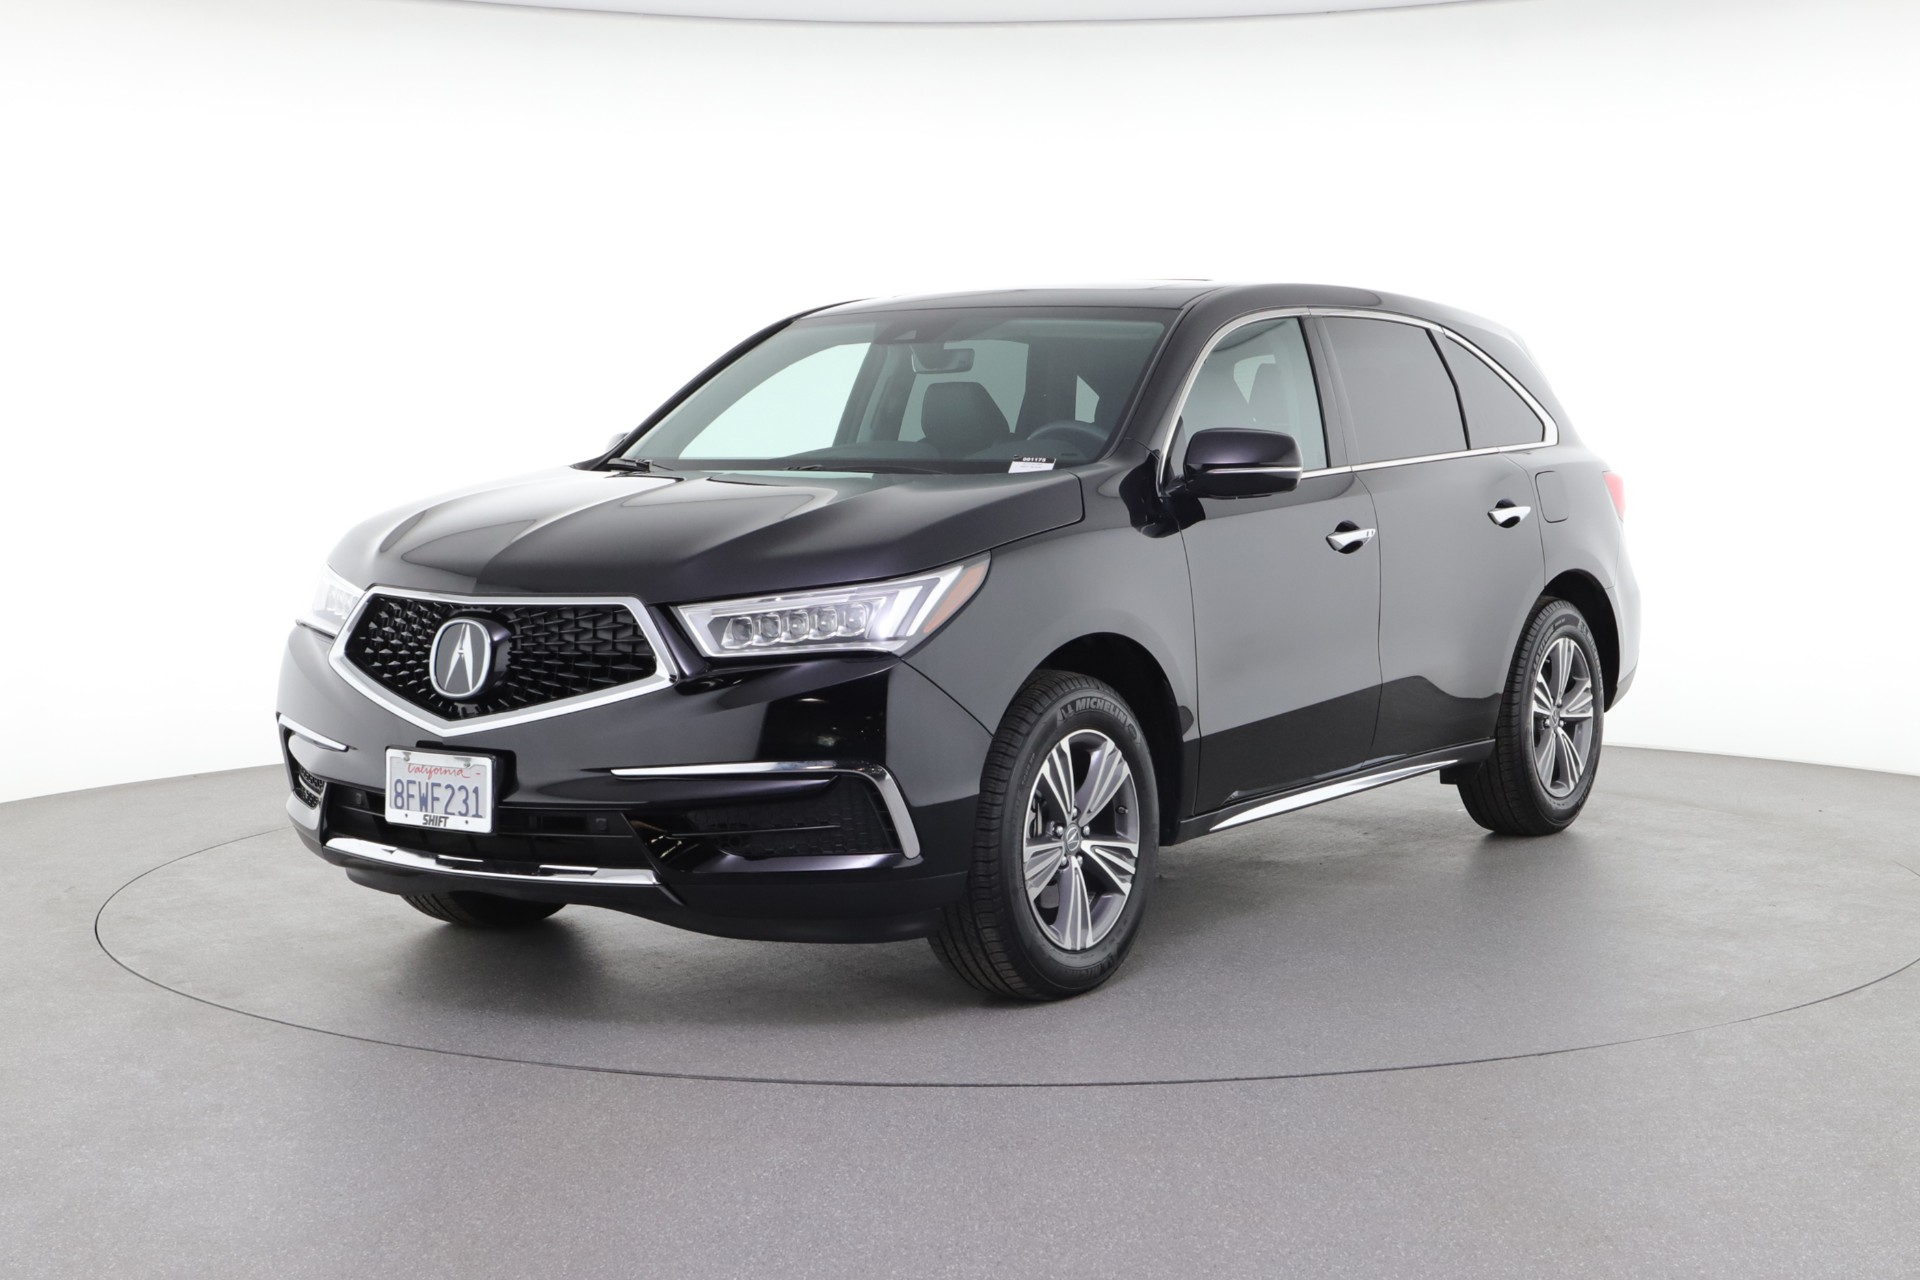 2019 Acura MDX (from $33,350)